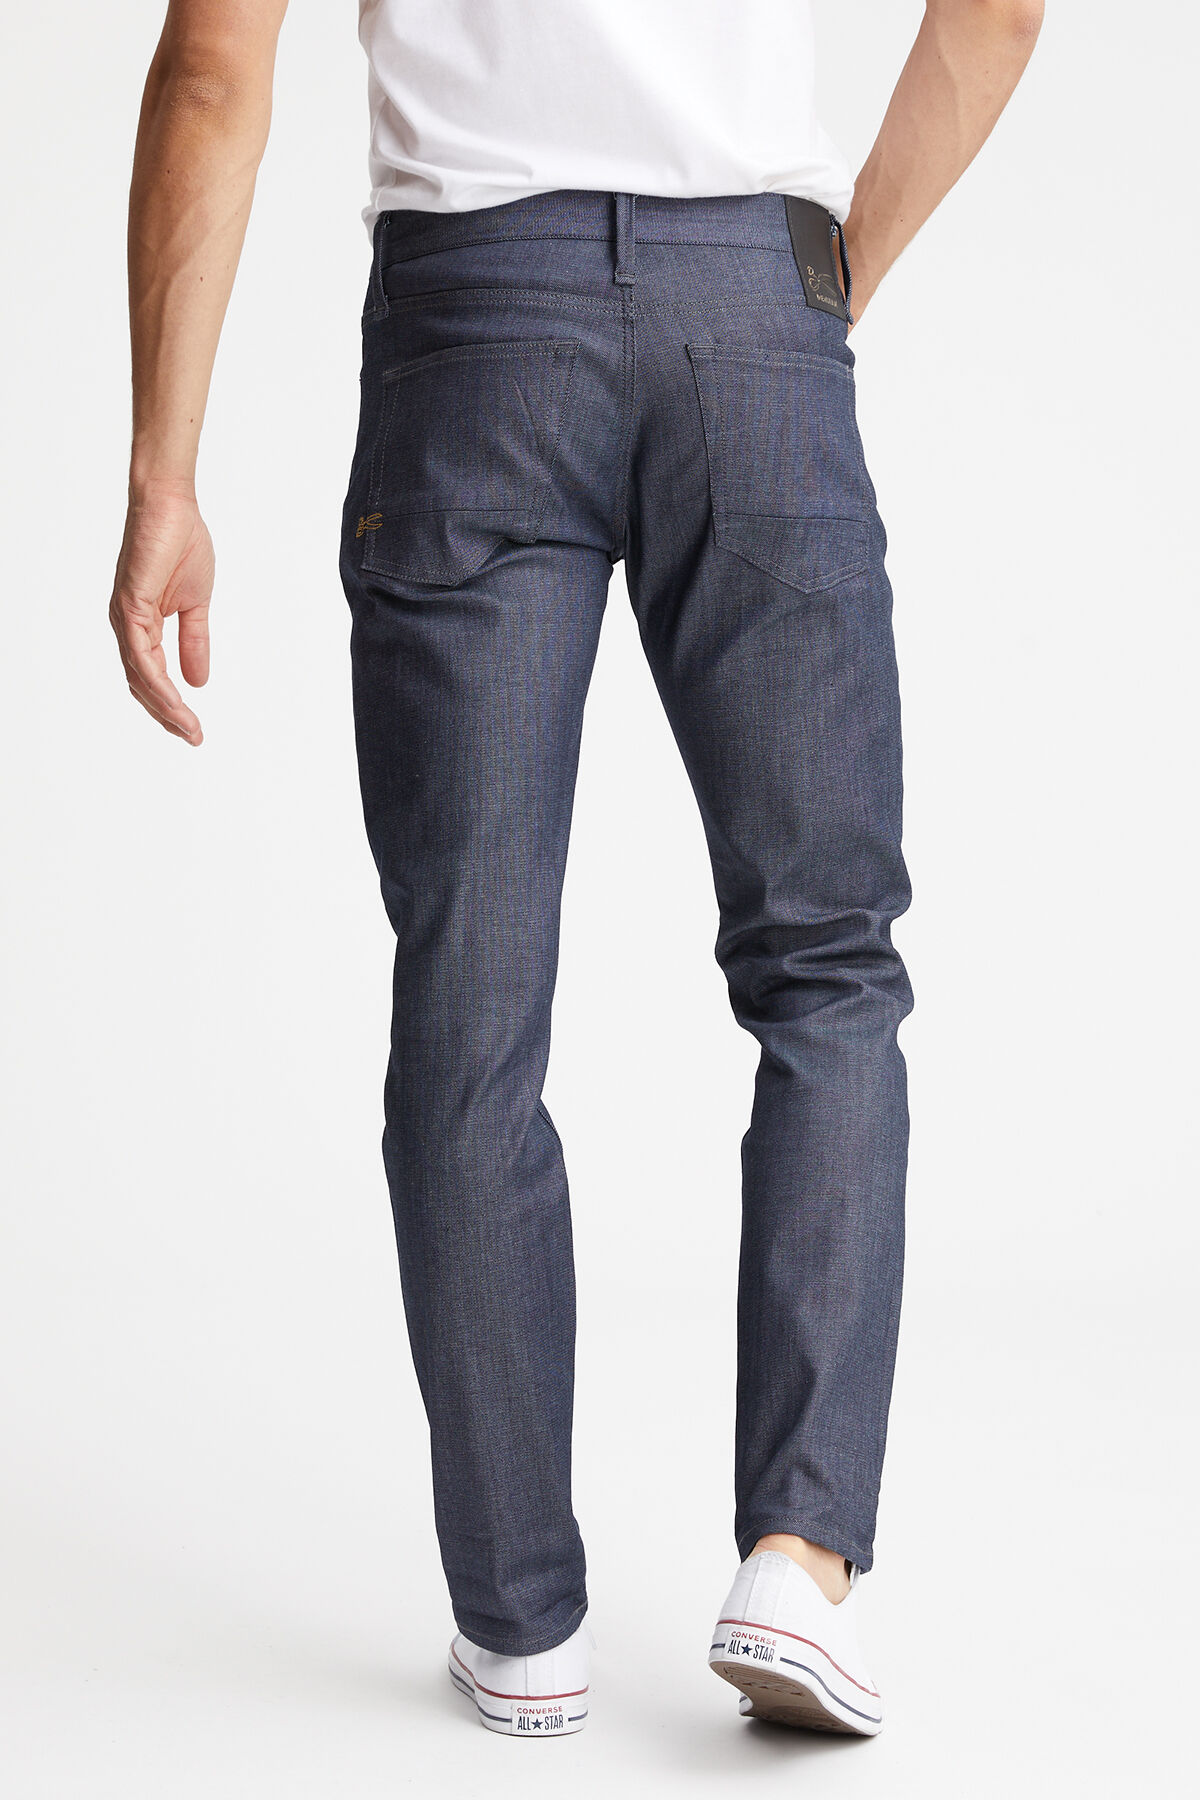 RAZOR Indigo Rinse Washed - Slim Fit